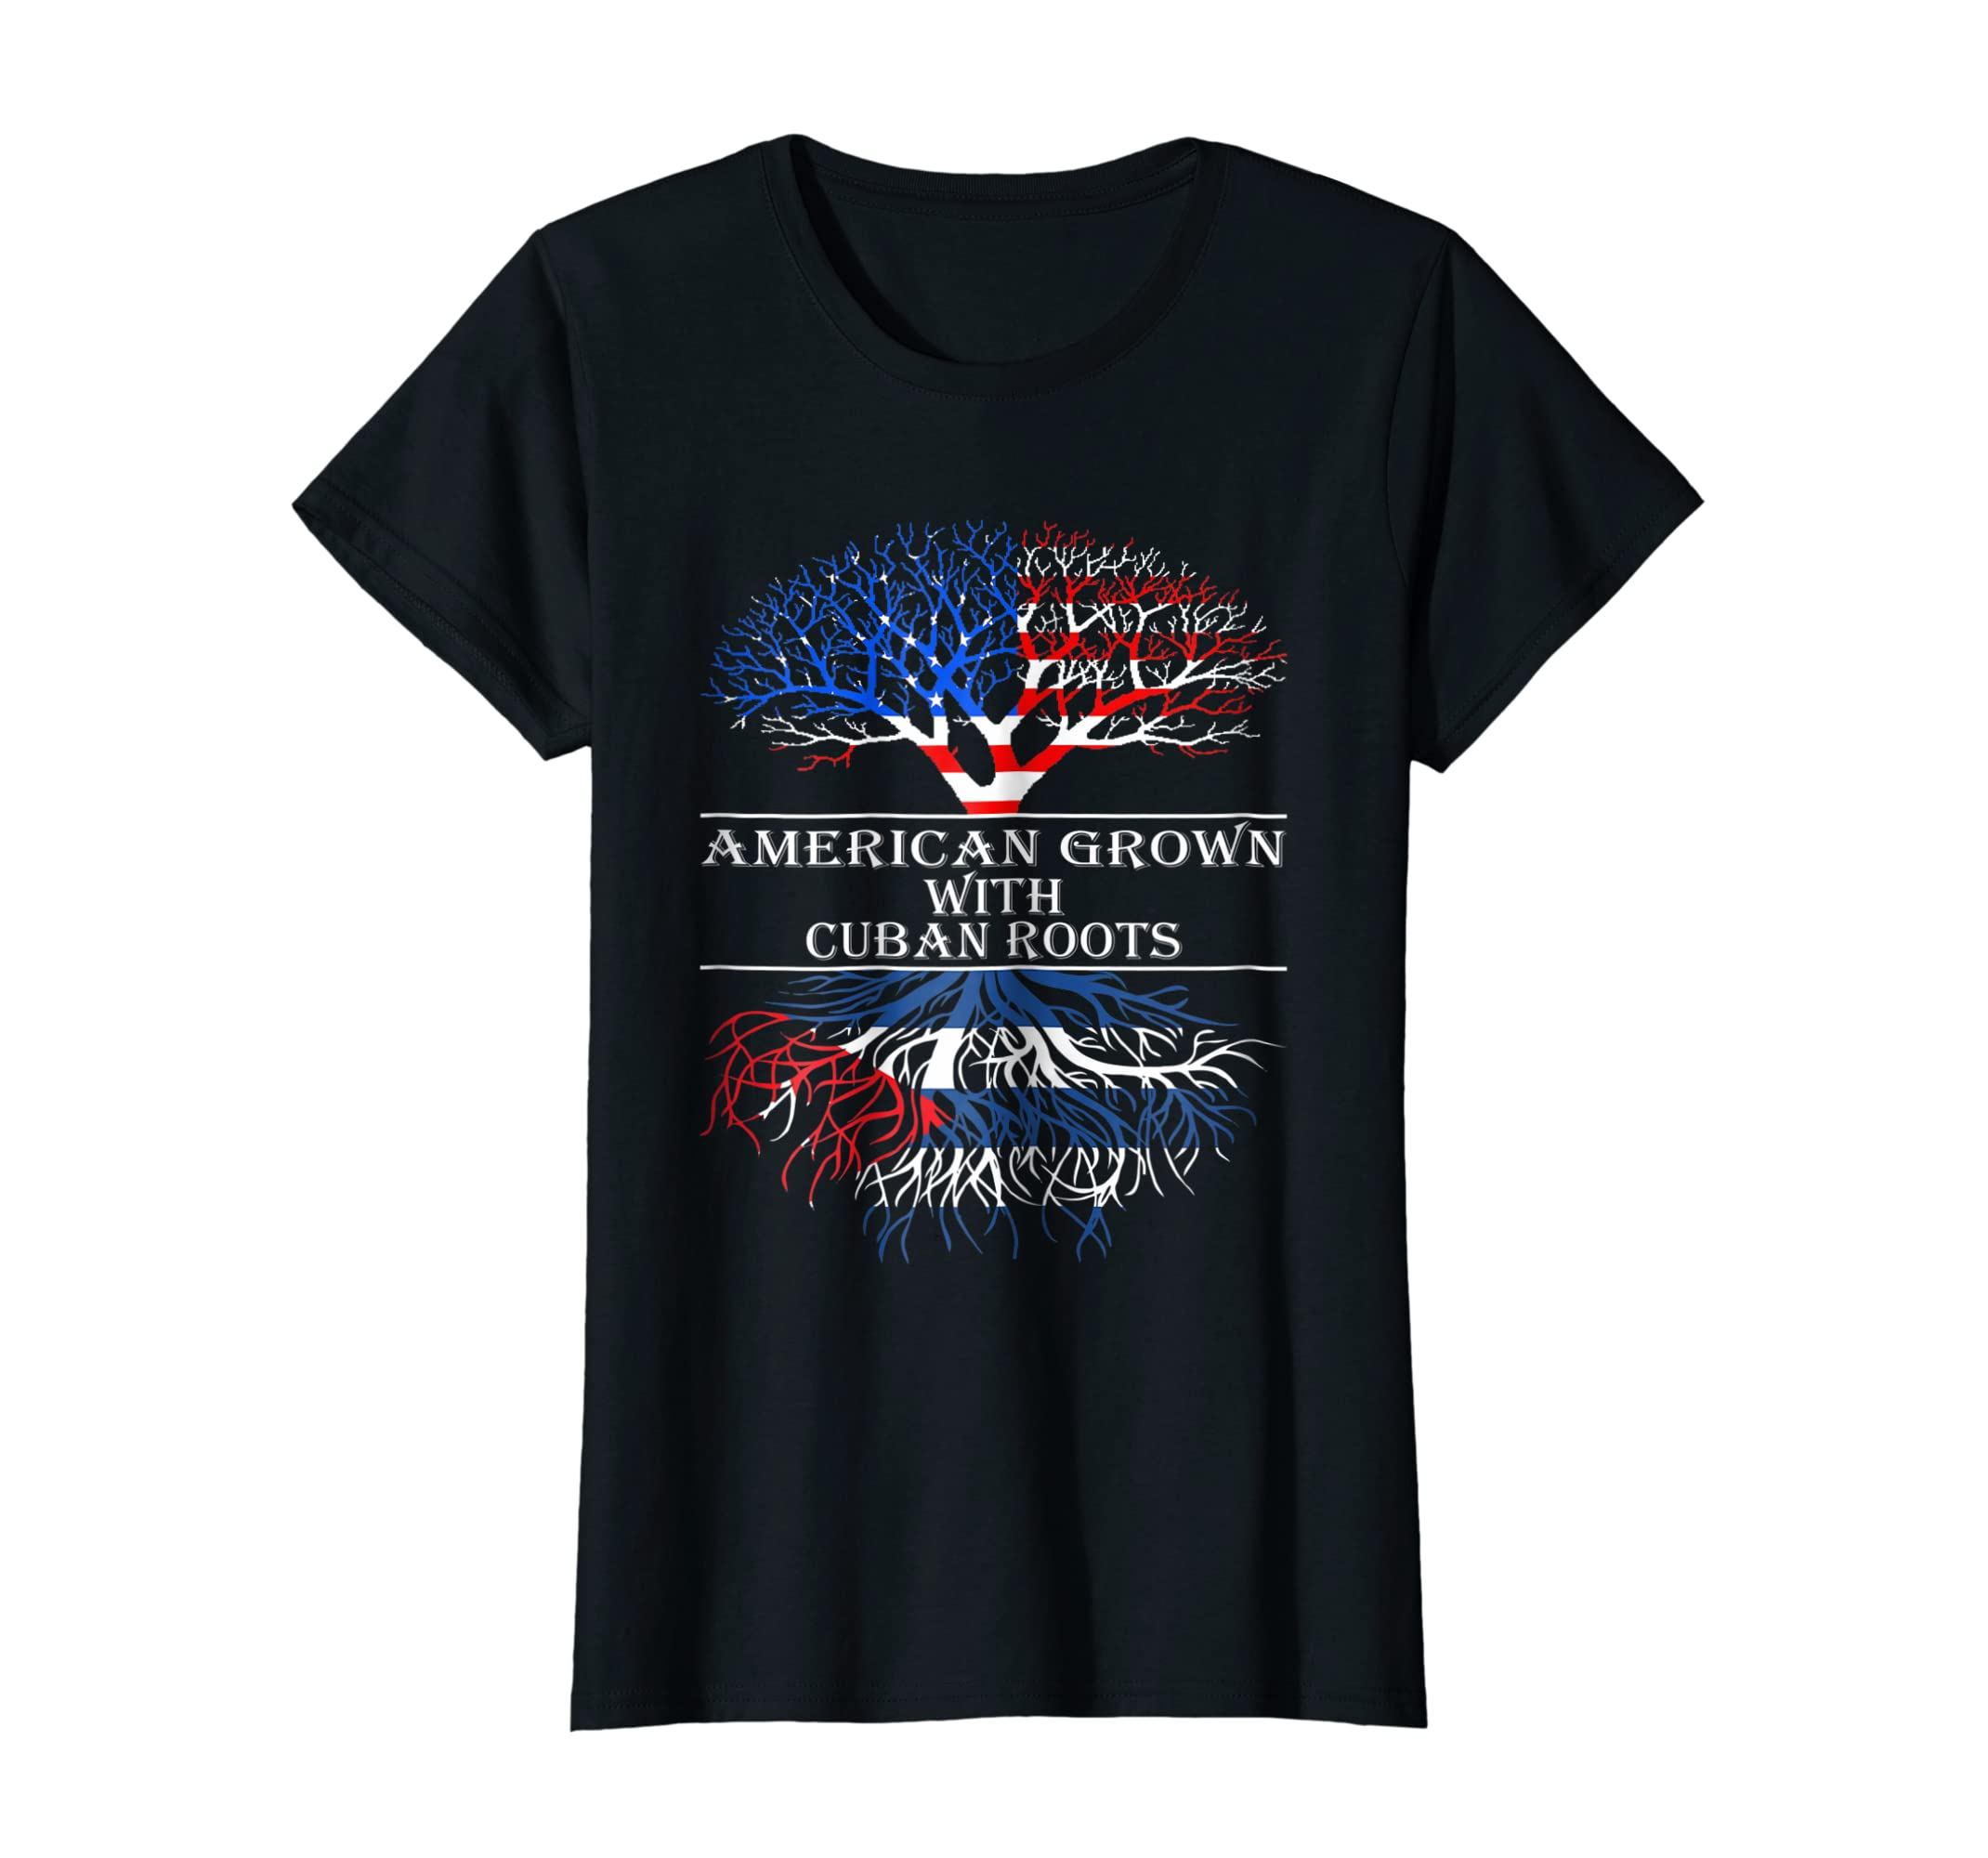 e614a73a Amazon.com: American Grown With Cuban Roots T-Shirt Tshirt: Clothing